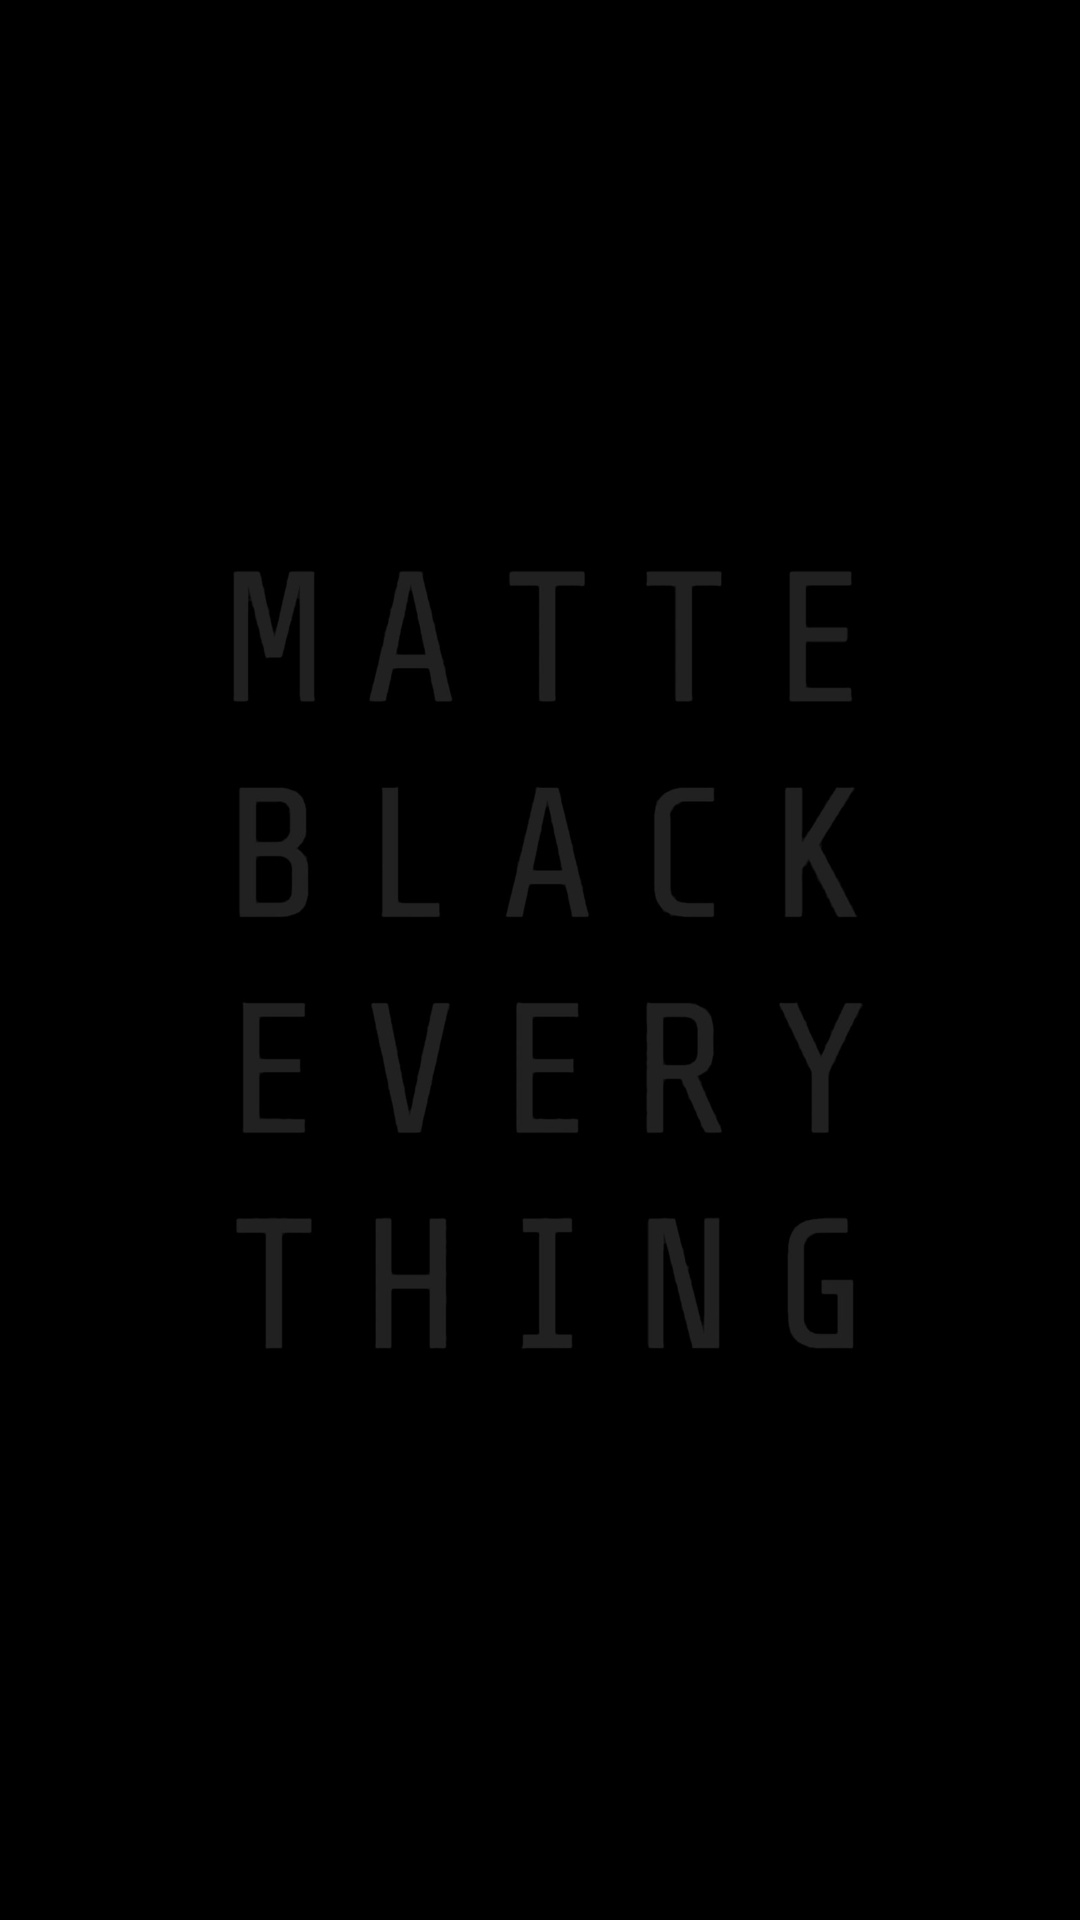 1080x1920 Matte Black Everything Mkbhd Iphone 7 6s 6 Plus